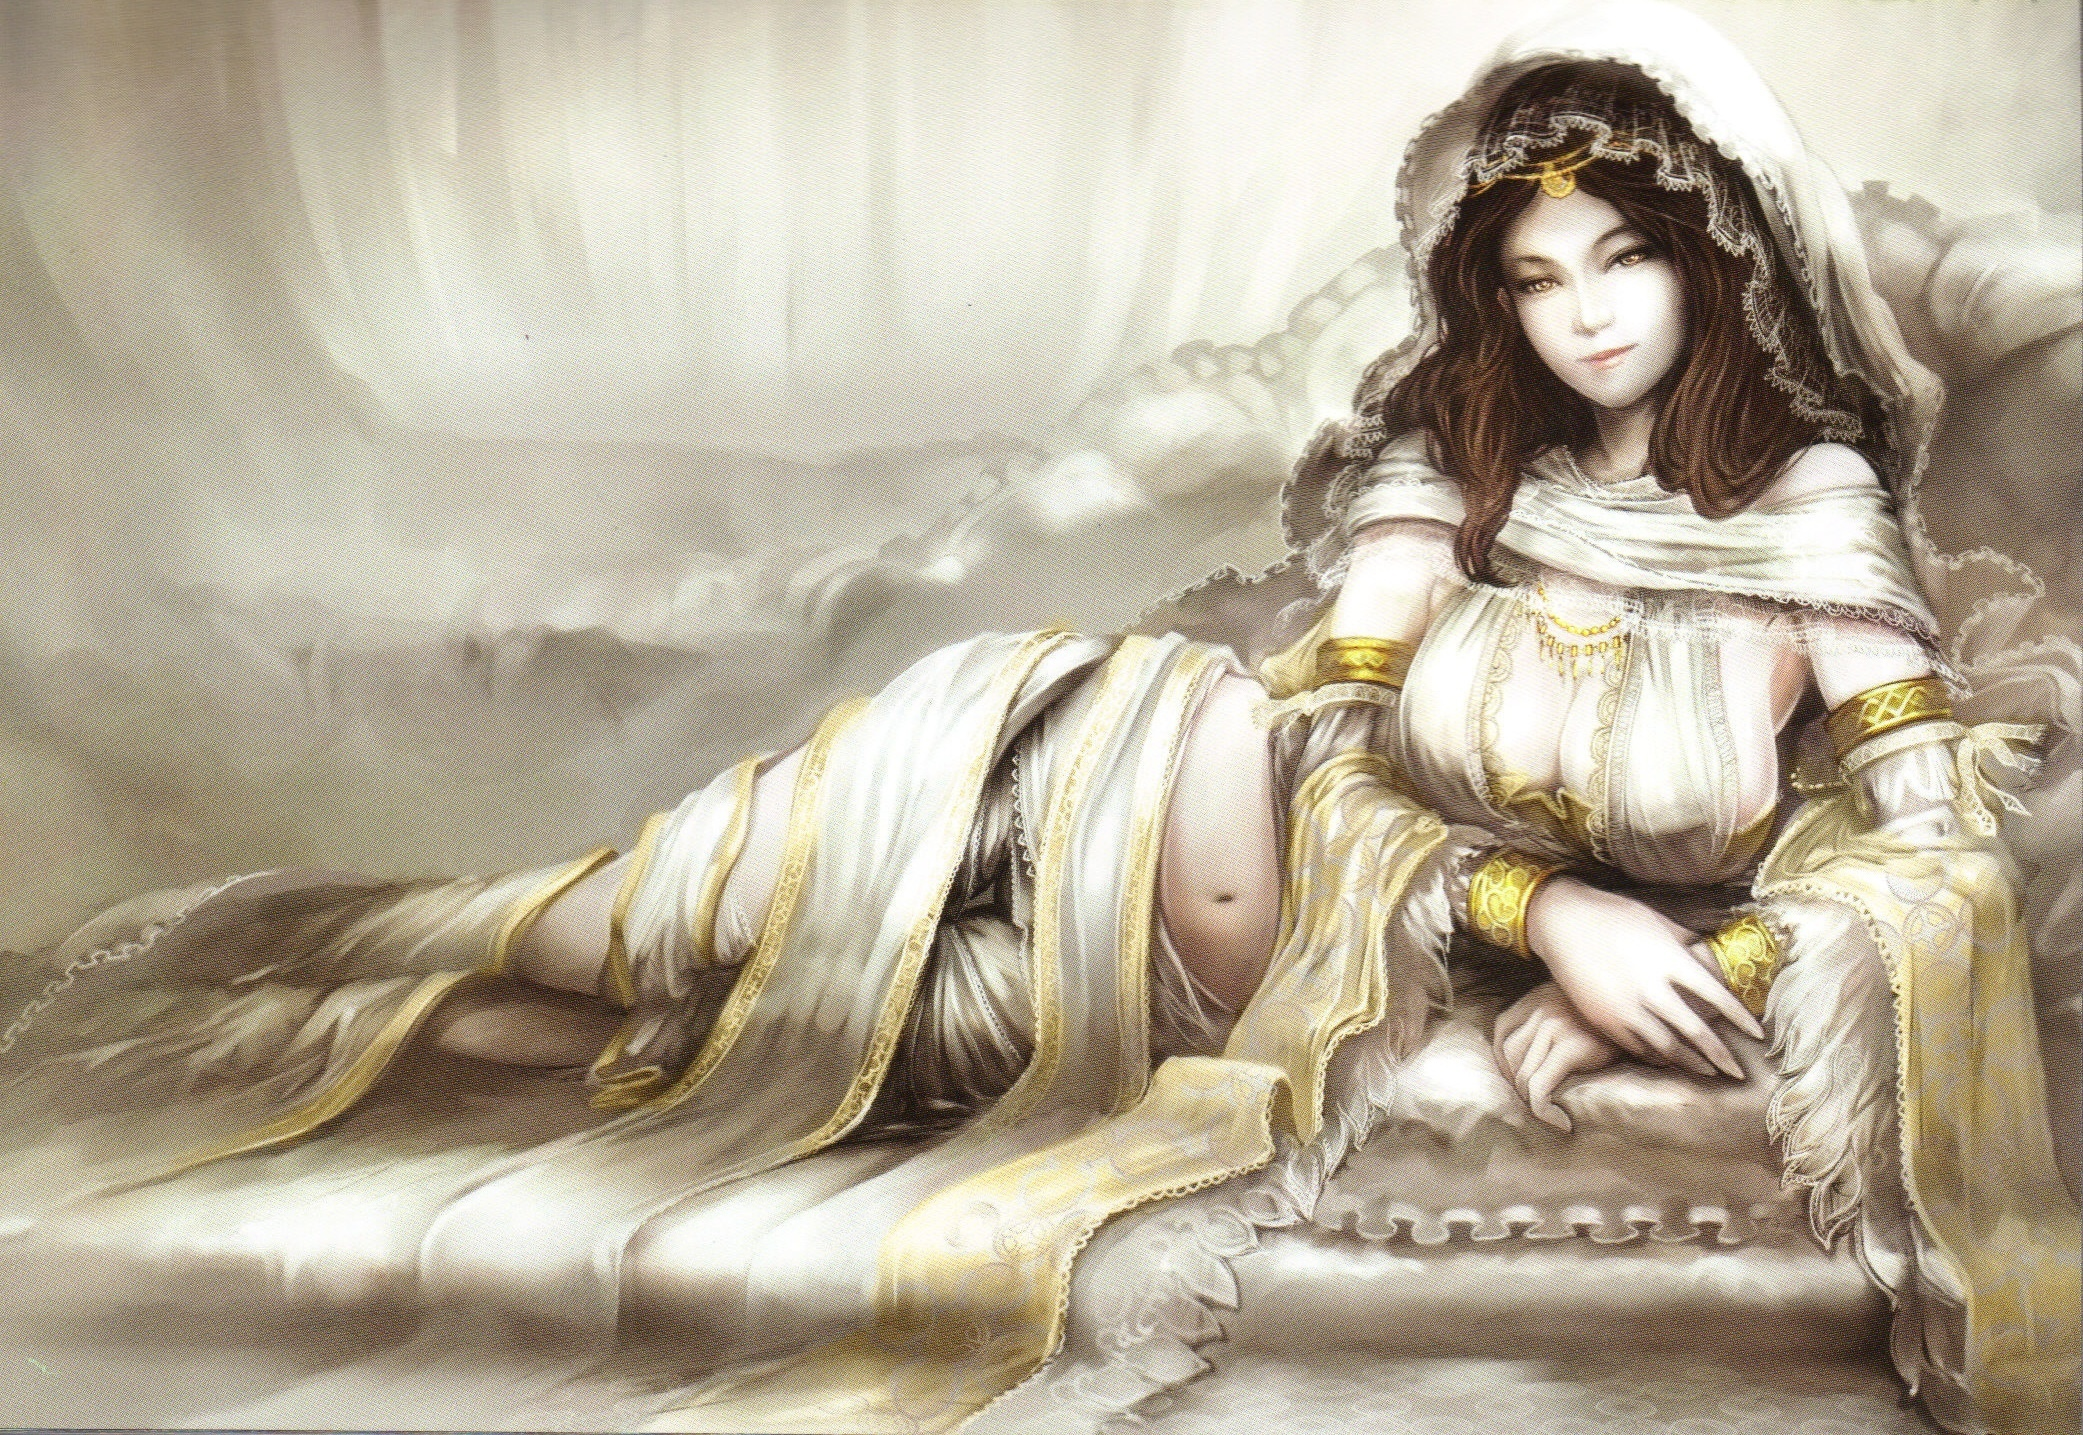 dark souls Gwynevere HD Wallpaper